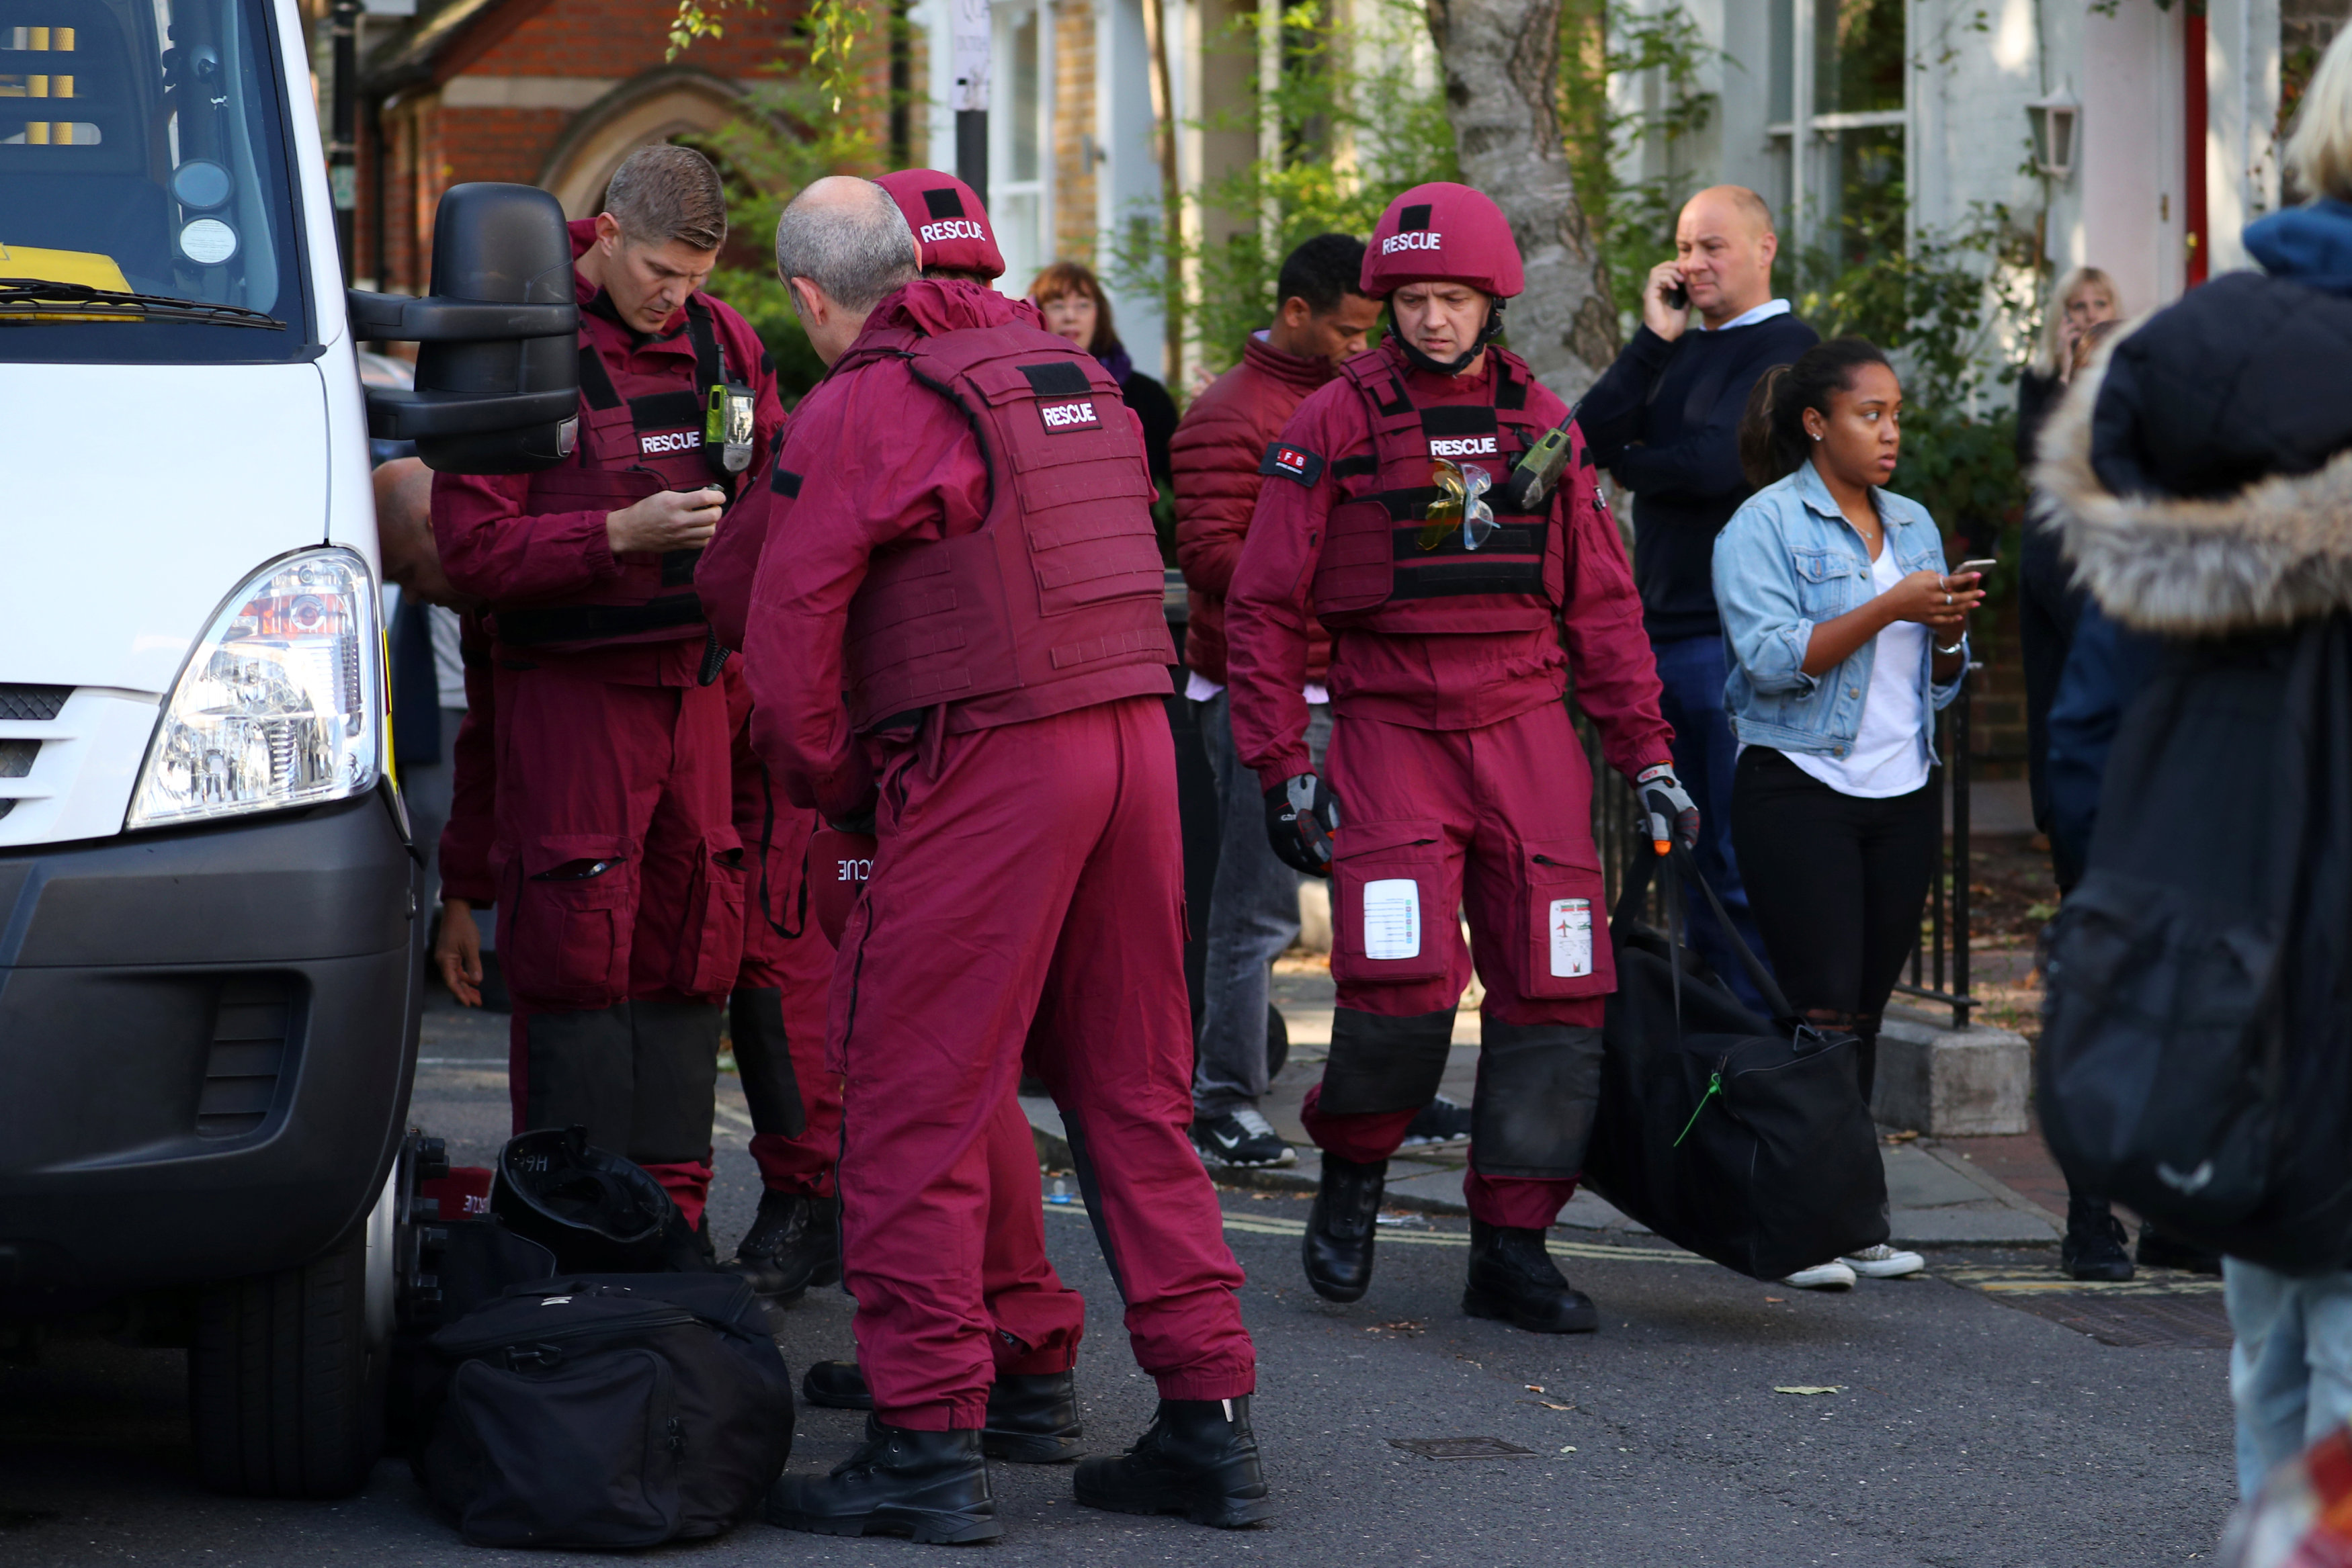 Members of a bomb disposal squad stand in the street near Parsons Green tube station in London, Britain on Sept. 15, 2017. (REUTERS/Hannah McKay)